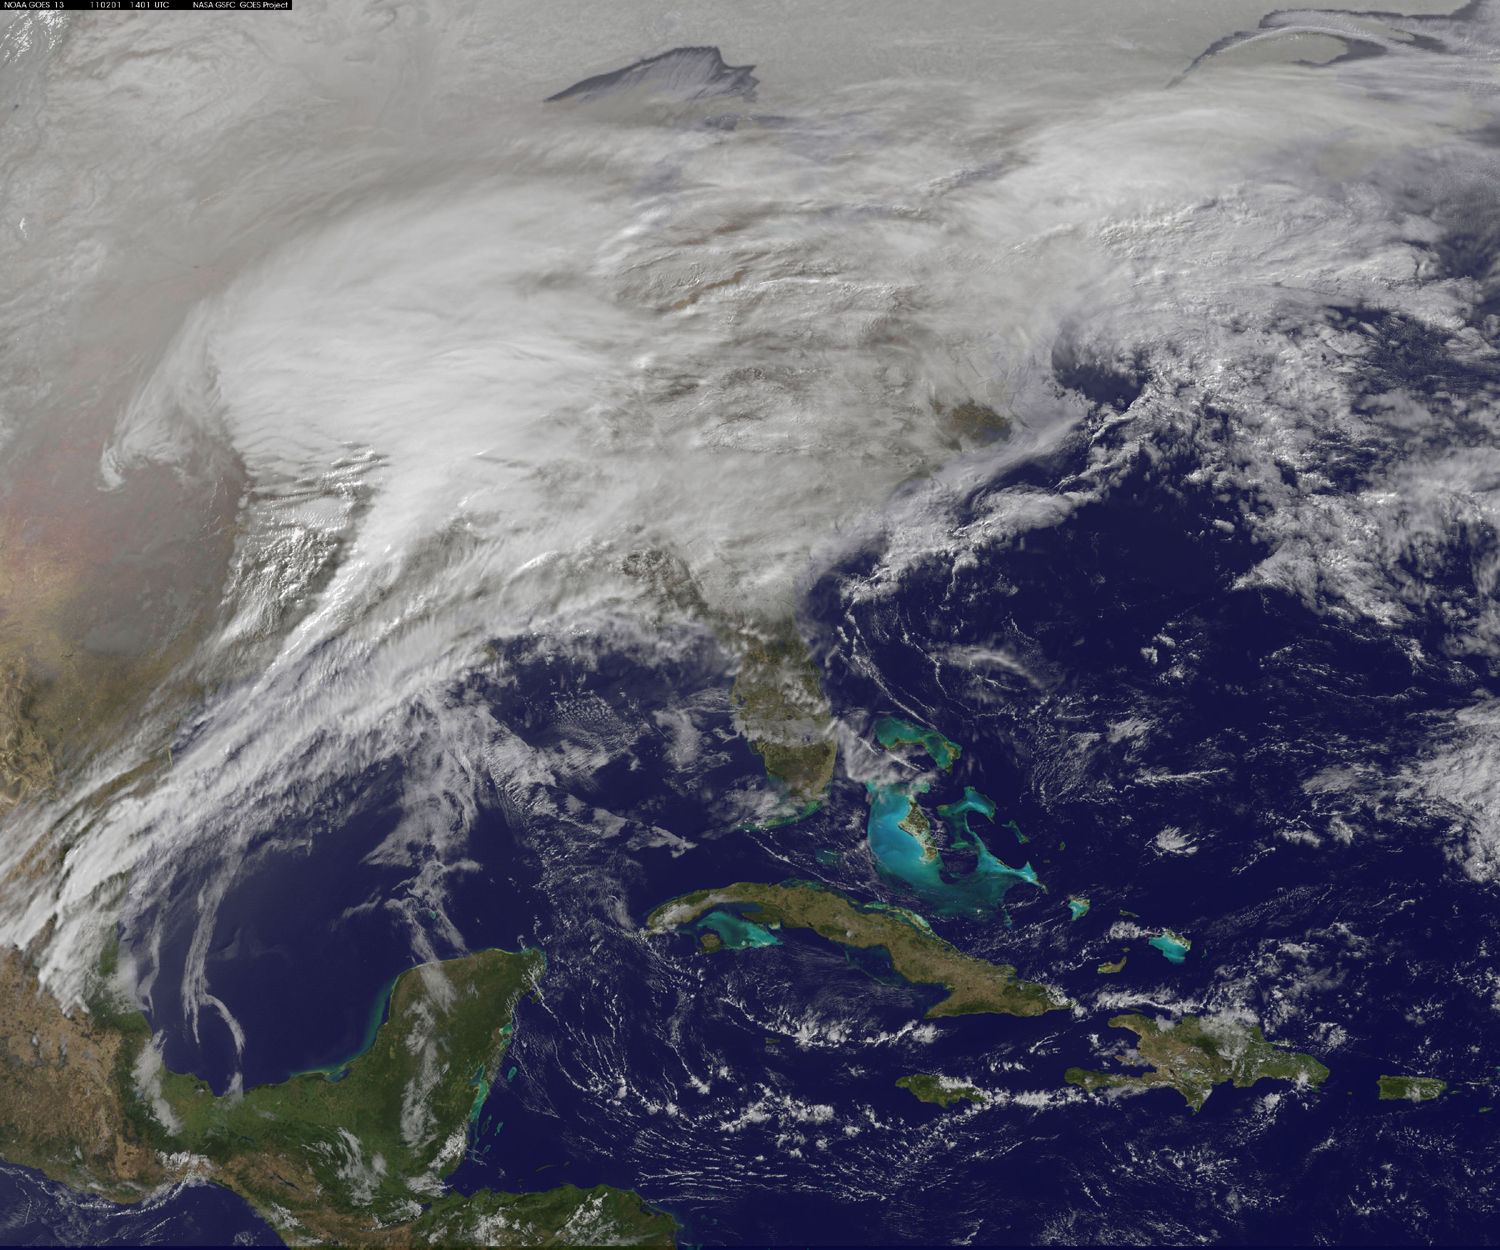 Nasa image of Feb 2, 2011 storm over Eastern US